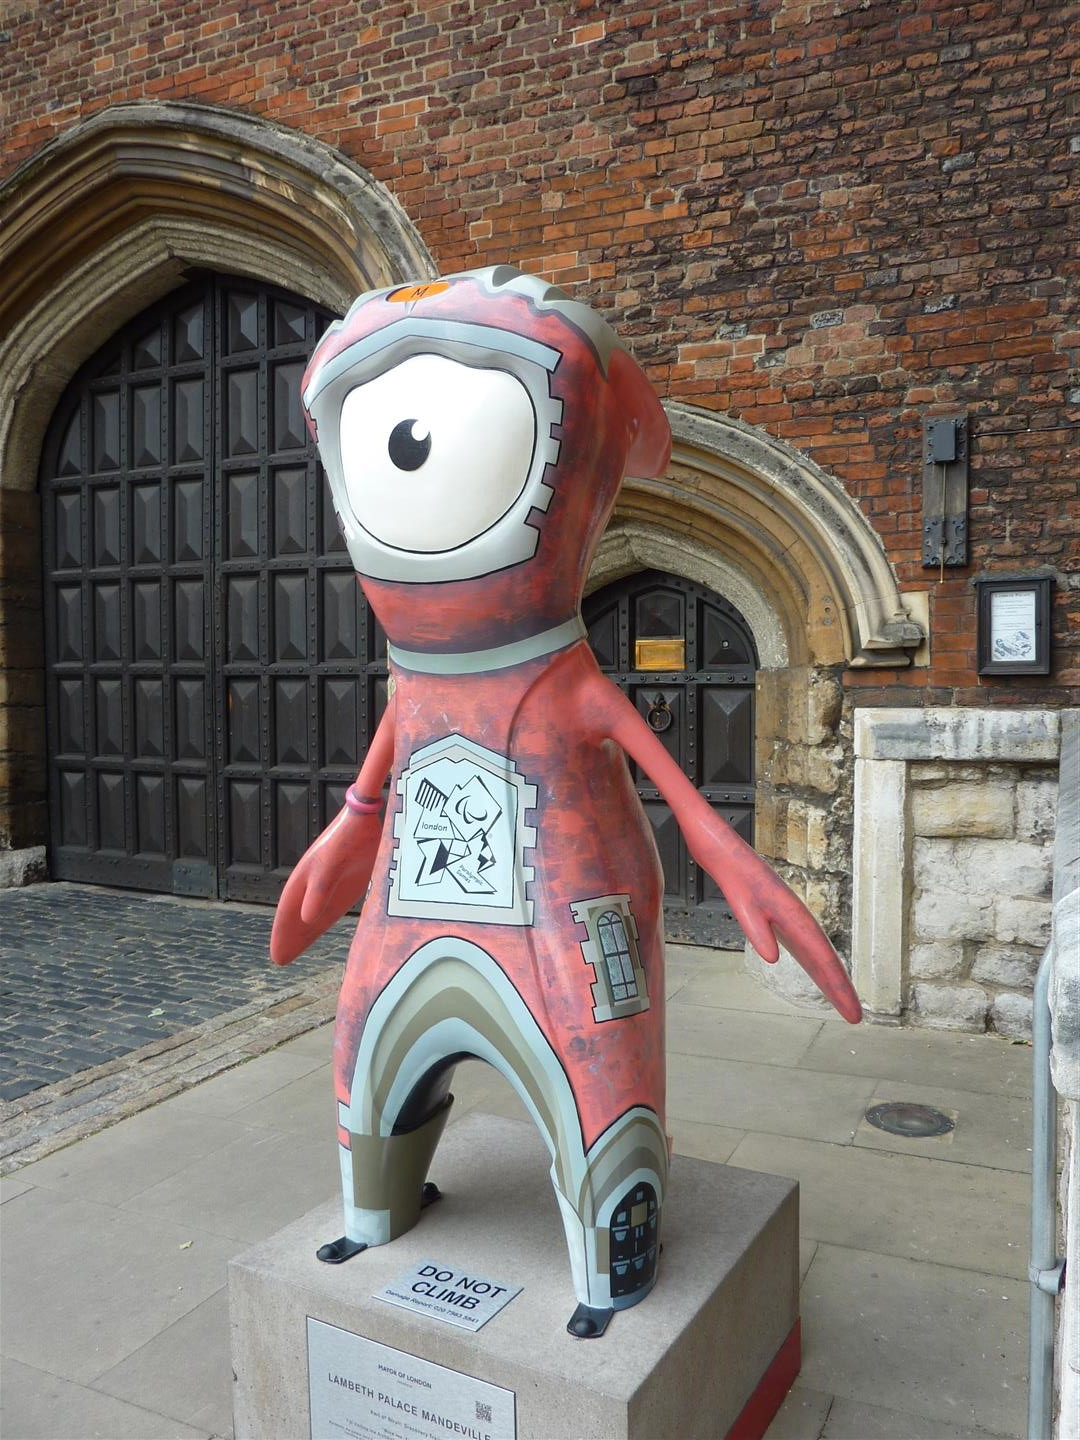 London itinerary - Lambeth Palace